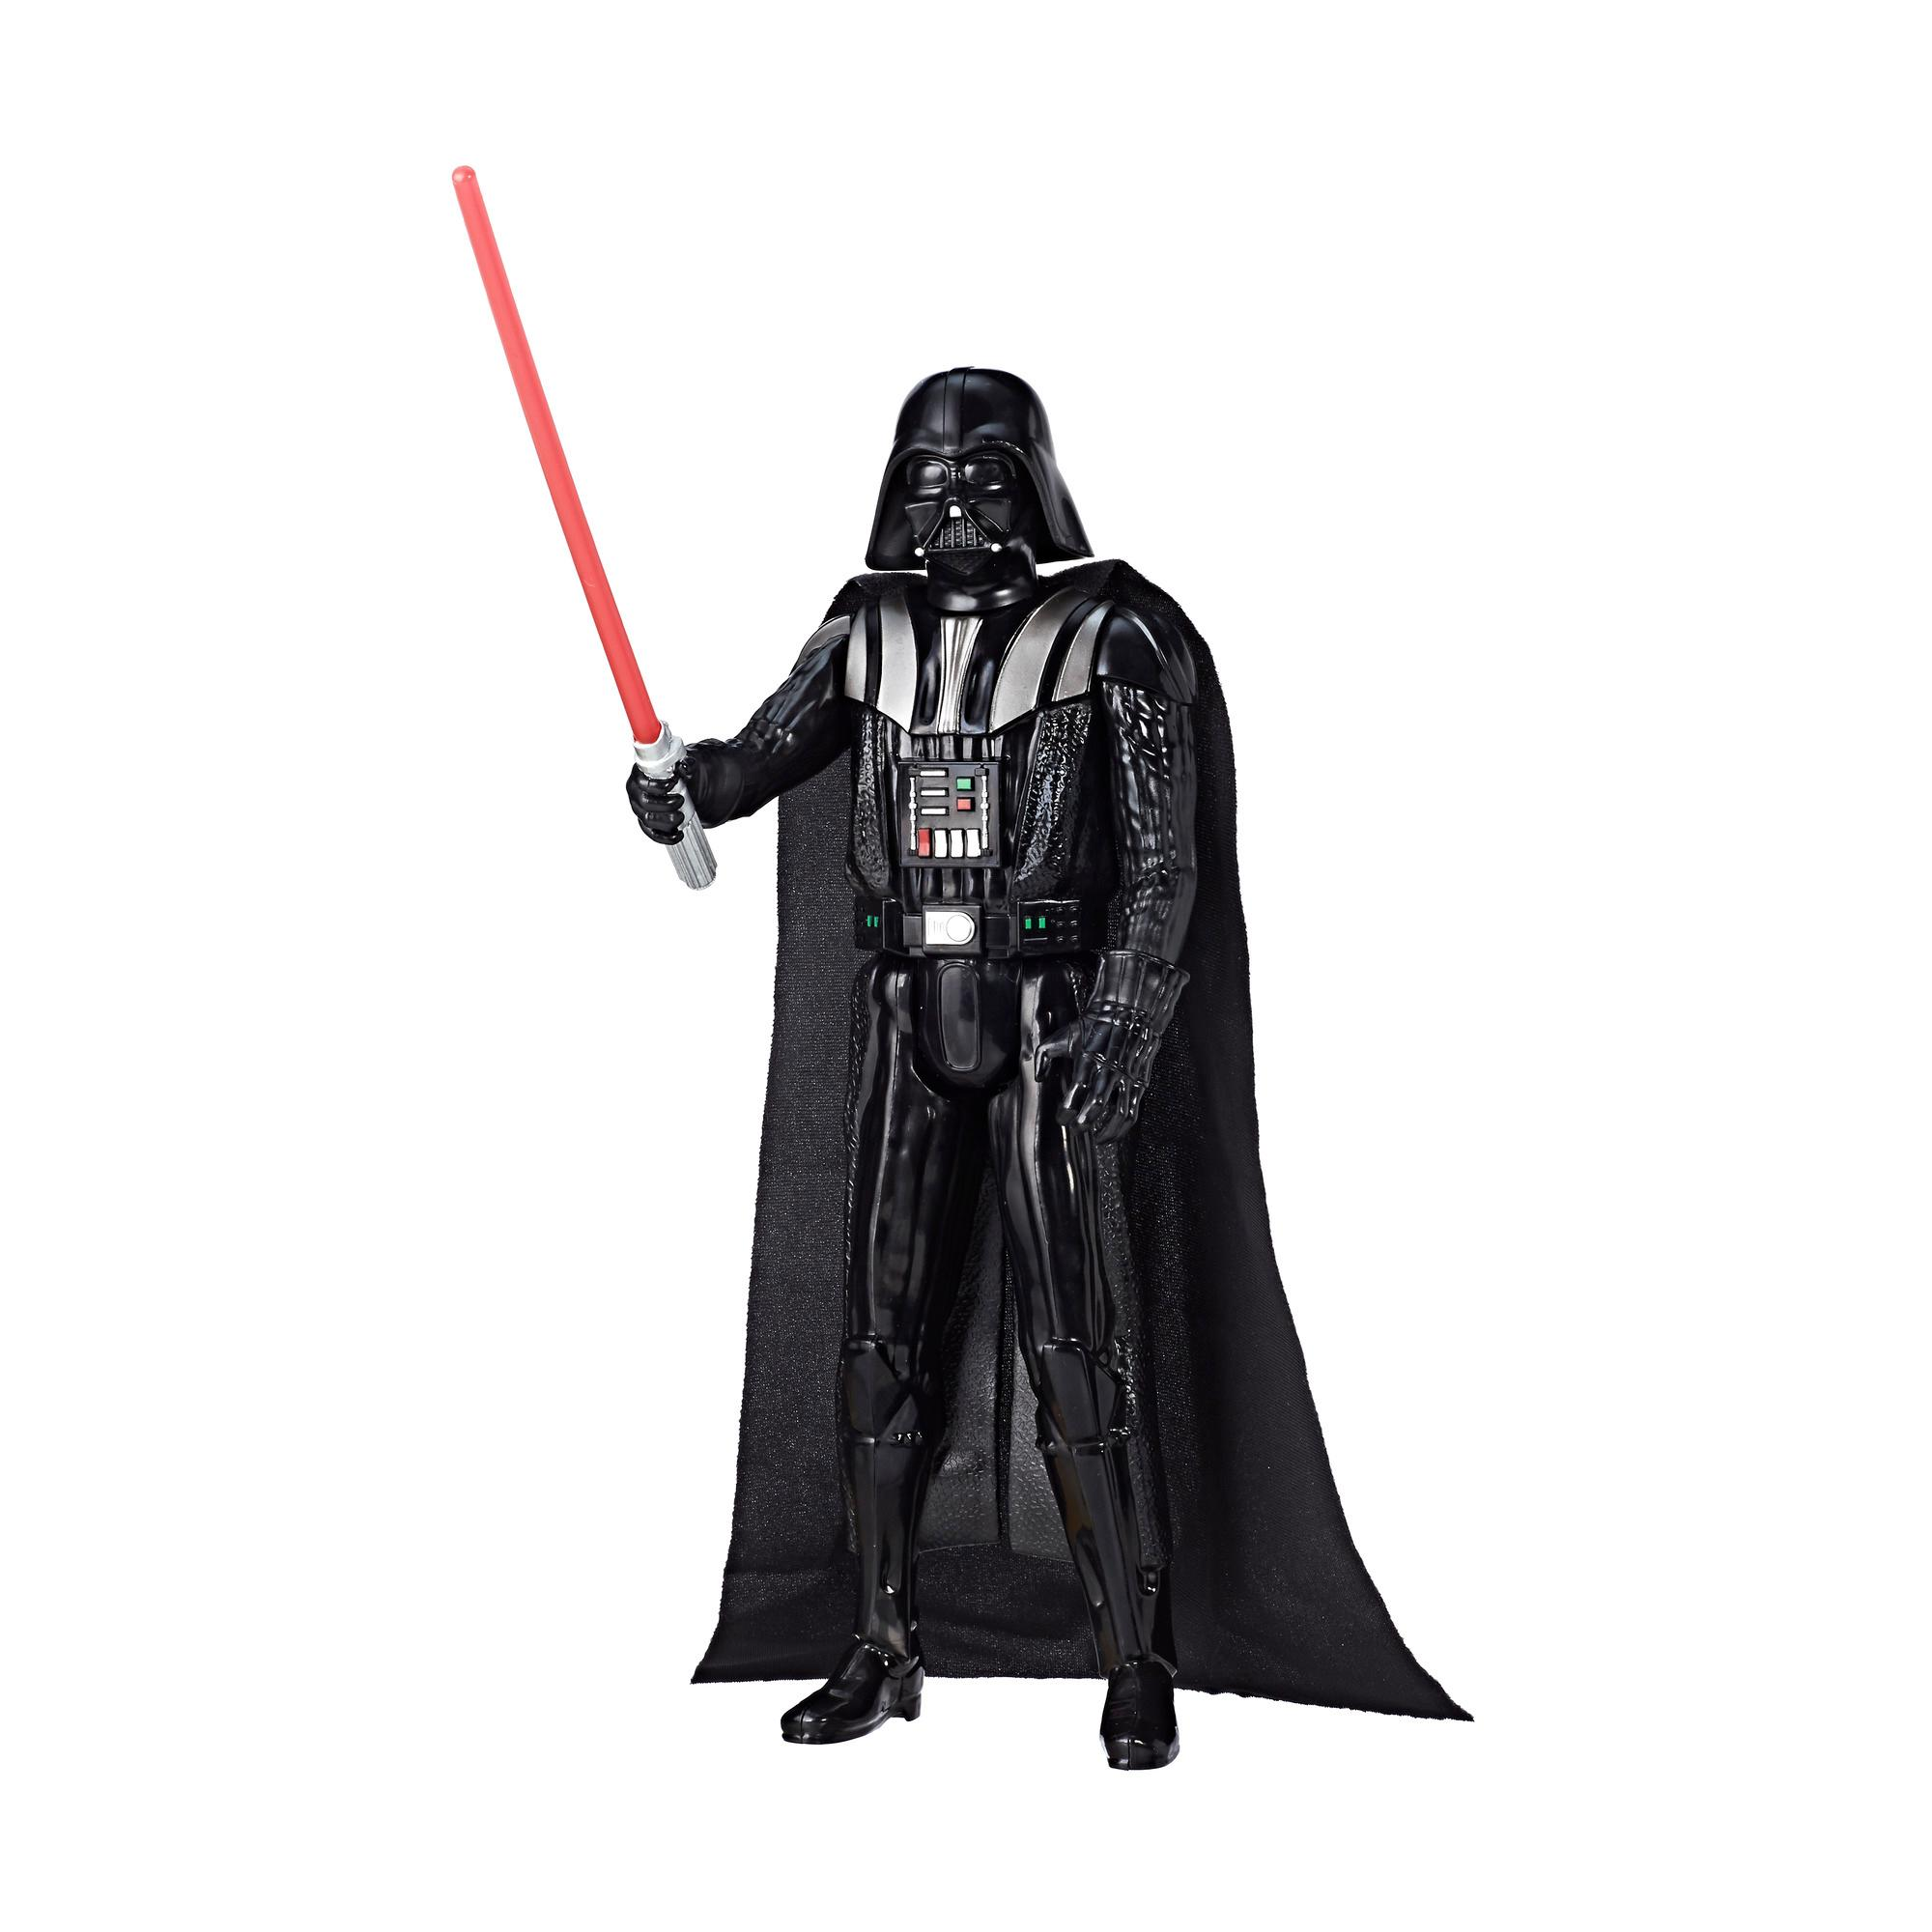 Star Wars: Revenge of the Sith 12-inch-scale Darth Vader Figure